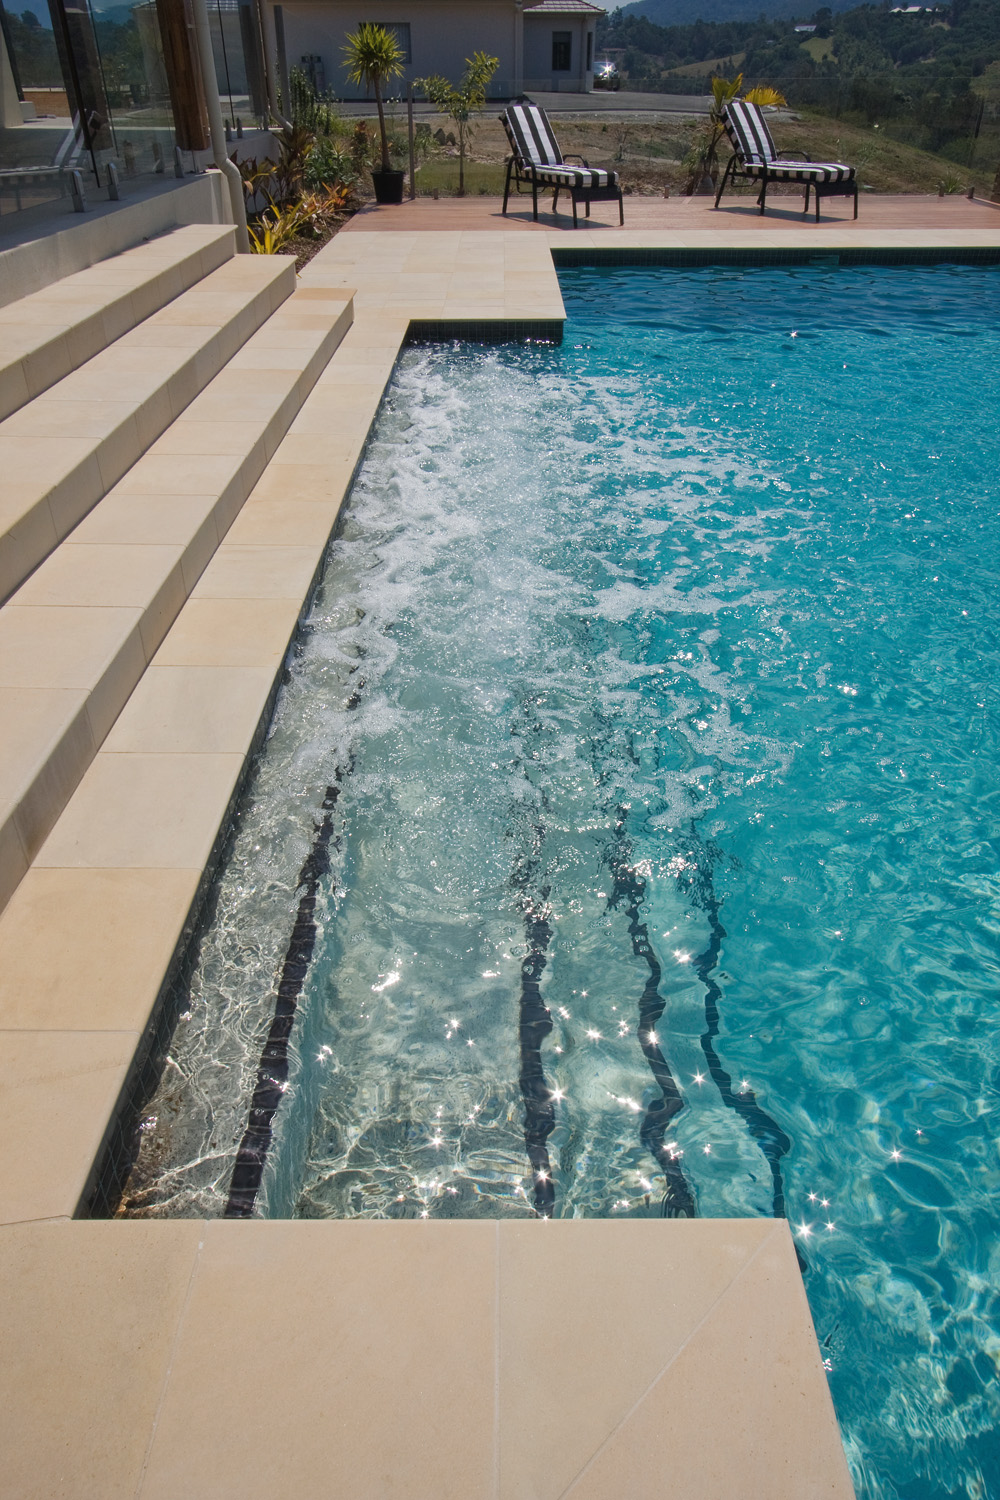 Steps leading into concrete pebble pool with black step edge safety tiles.